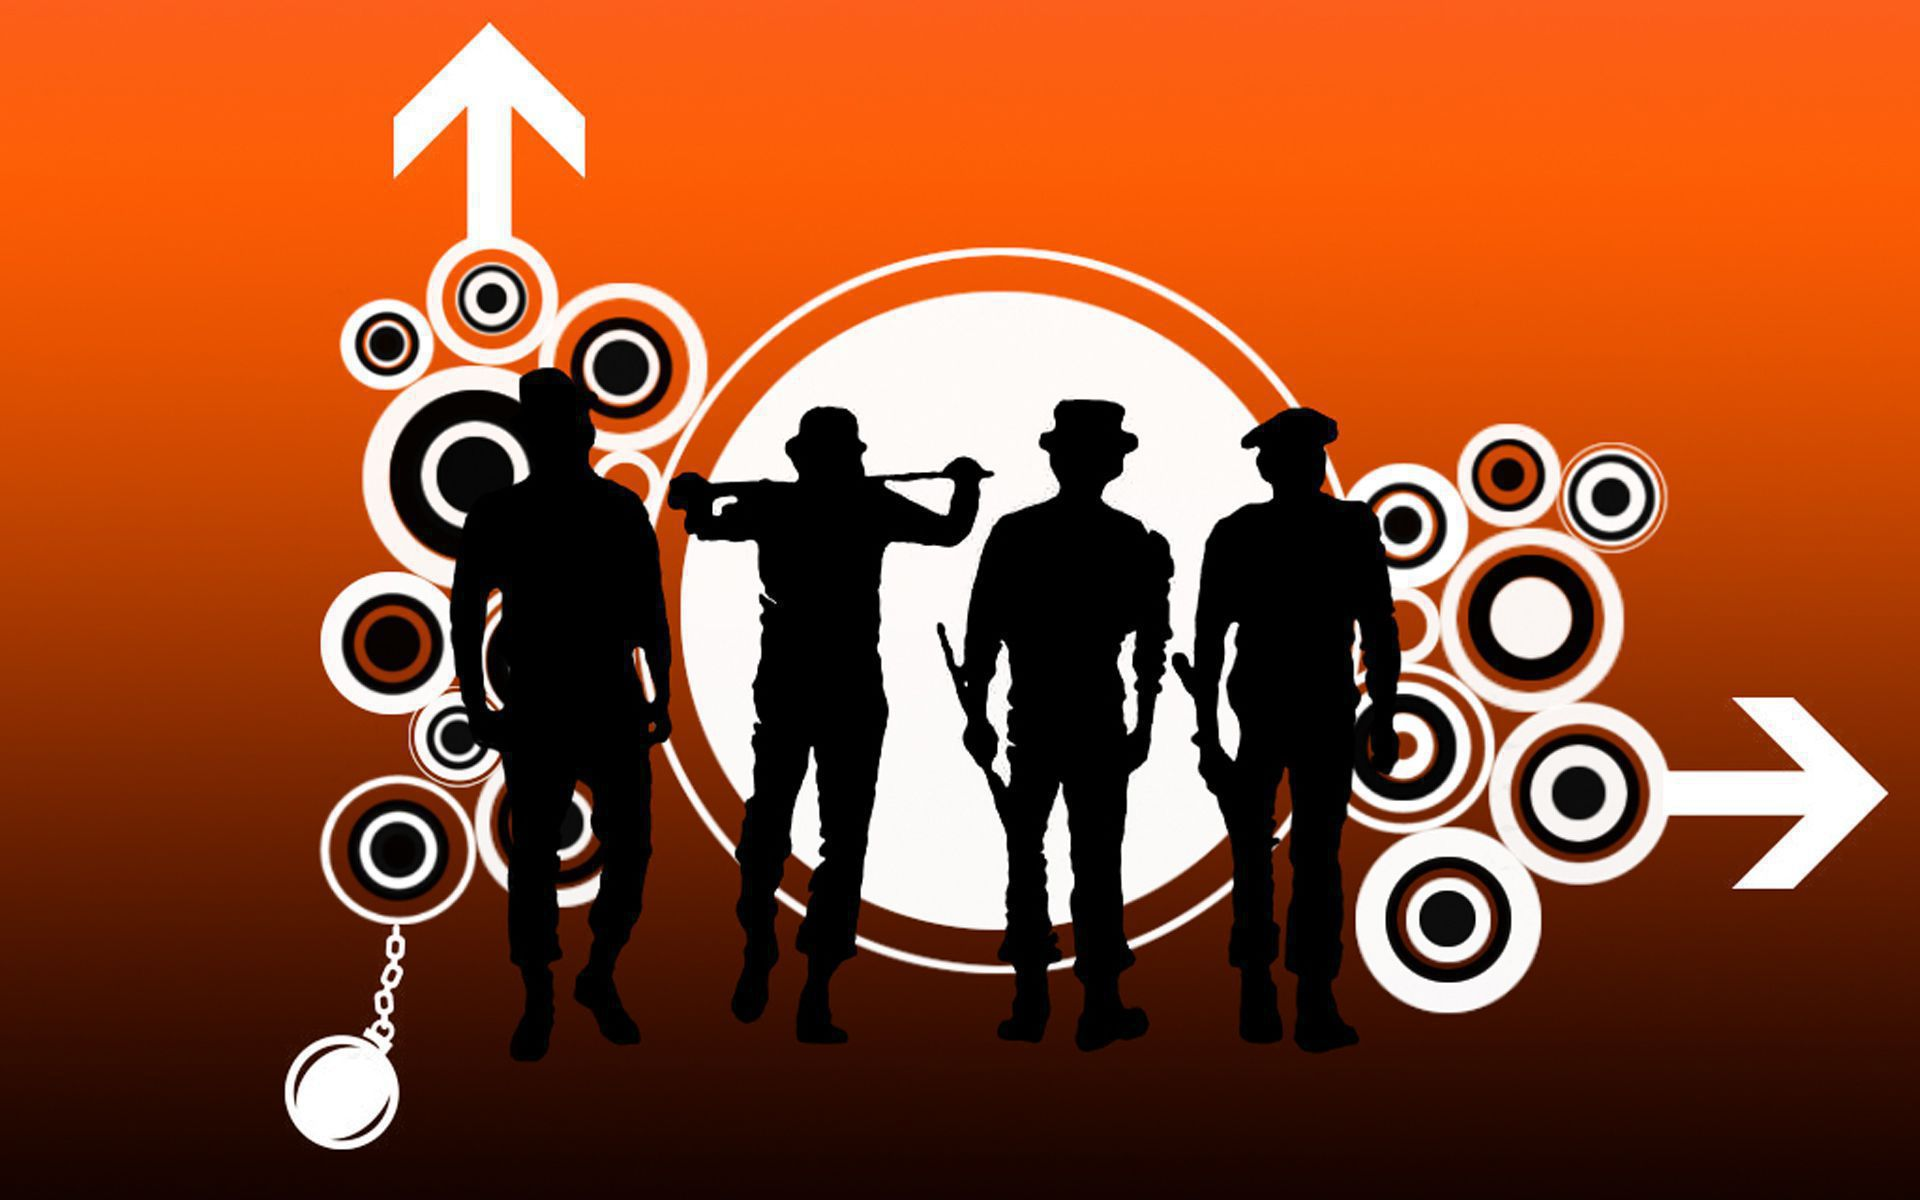 A Clockwork Orange Wallpapers Images Photos Pictures ... A Clockwork Orange Wallpaper